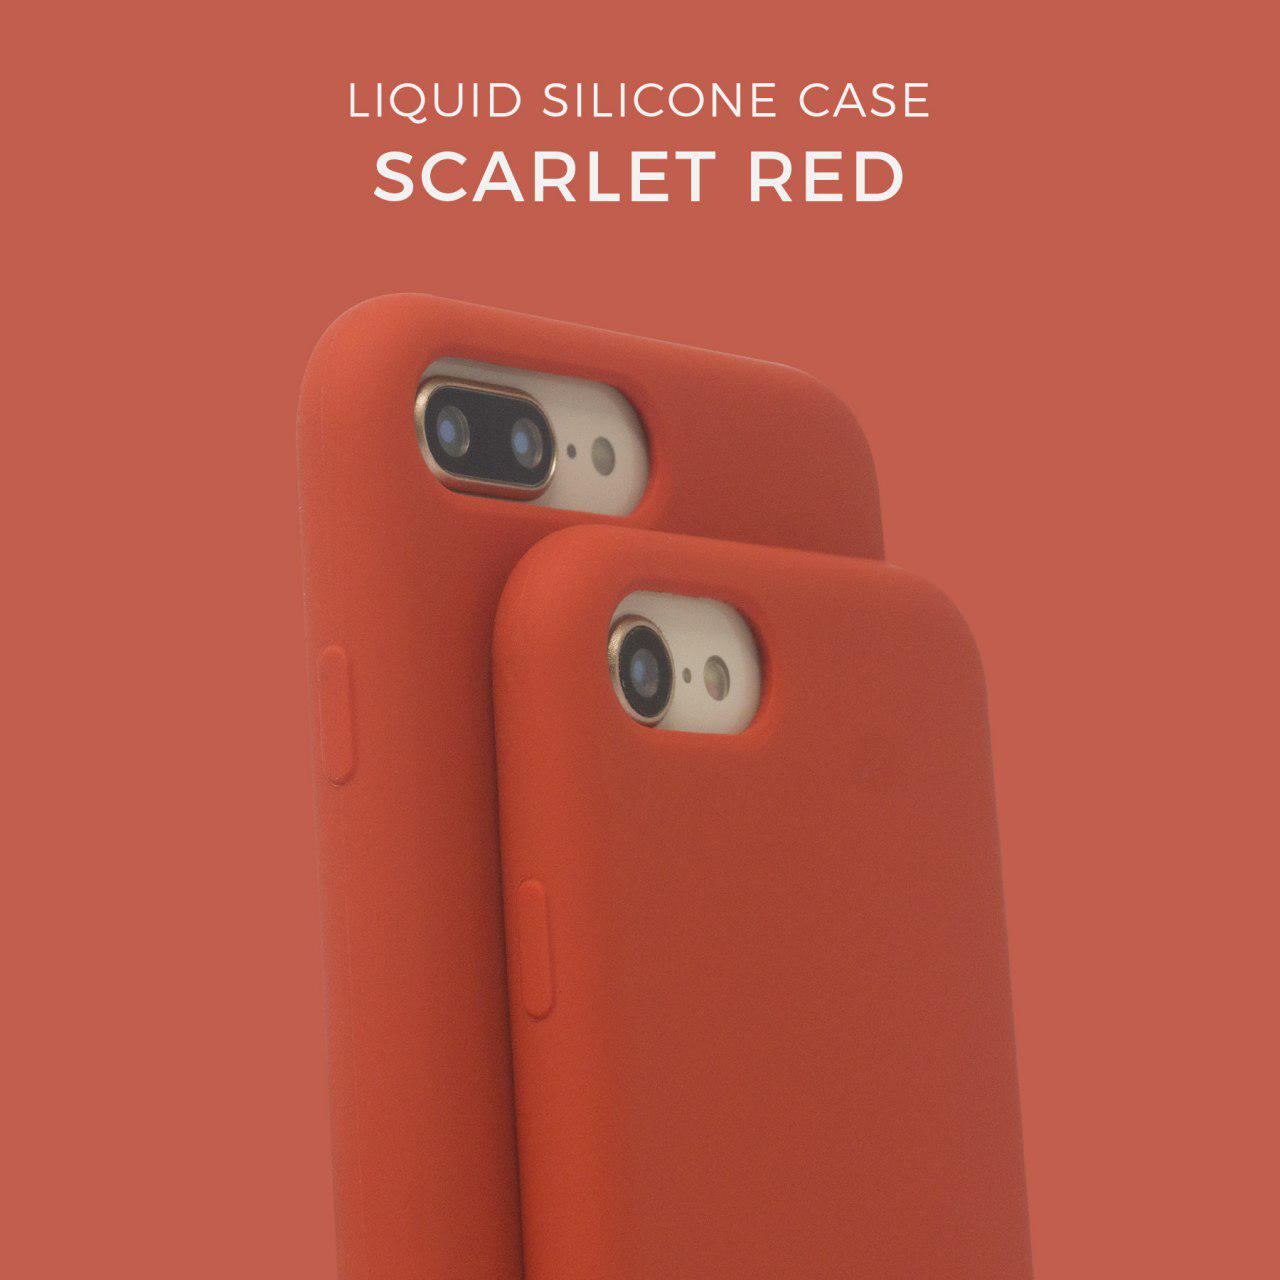 Scarlet Red Silicone Case